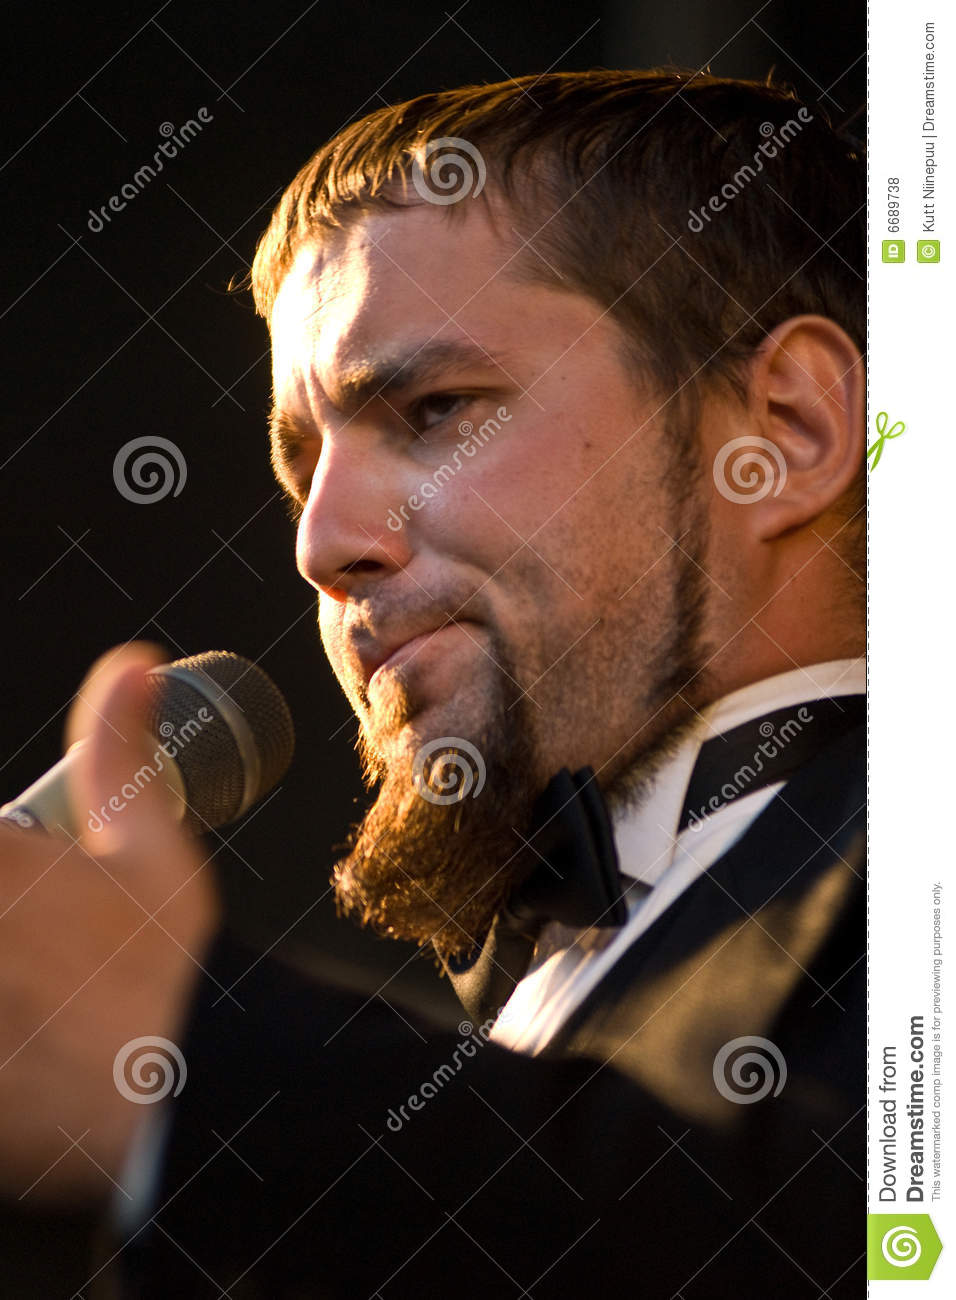 Male Opera Singer Royalty Free Stock Photos - Image: 6689738